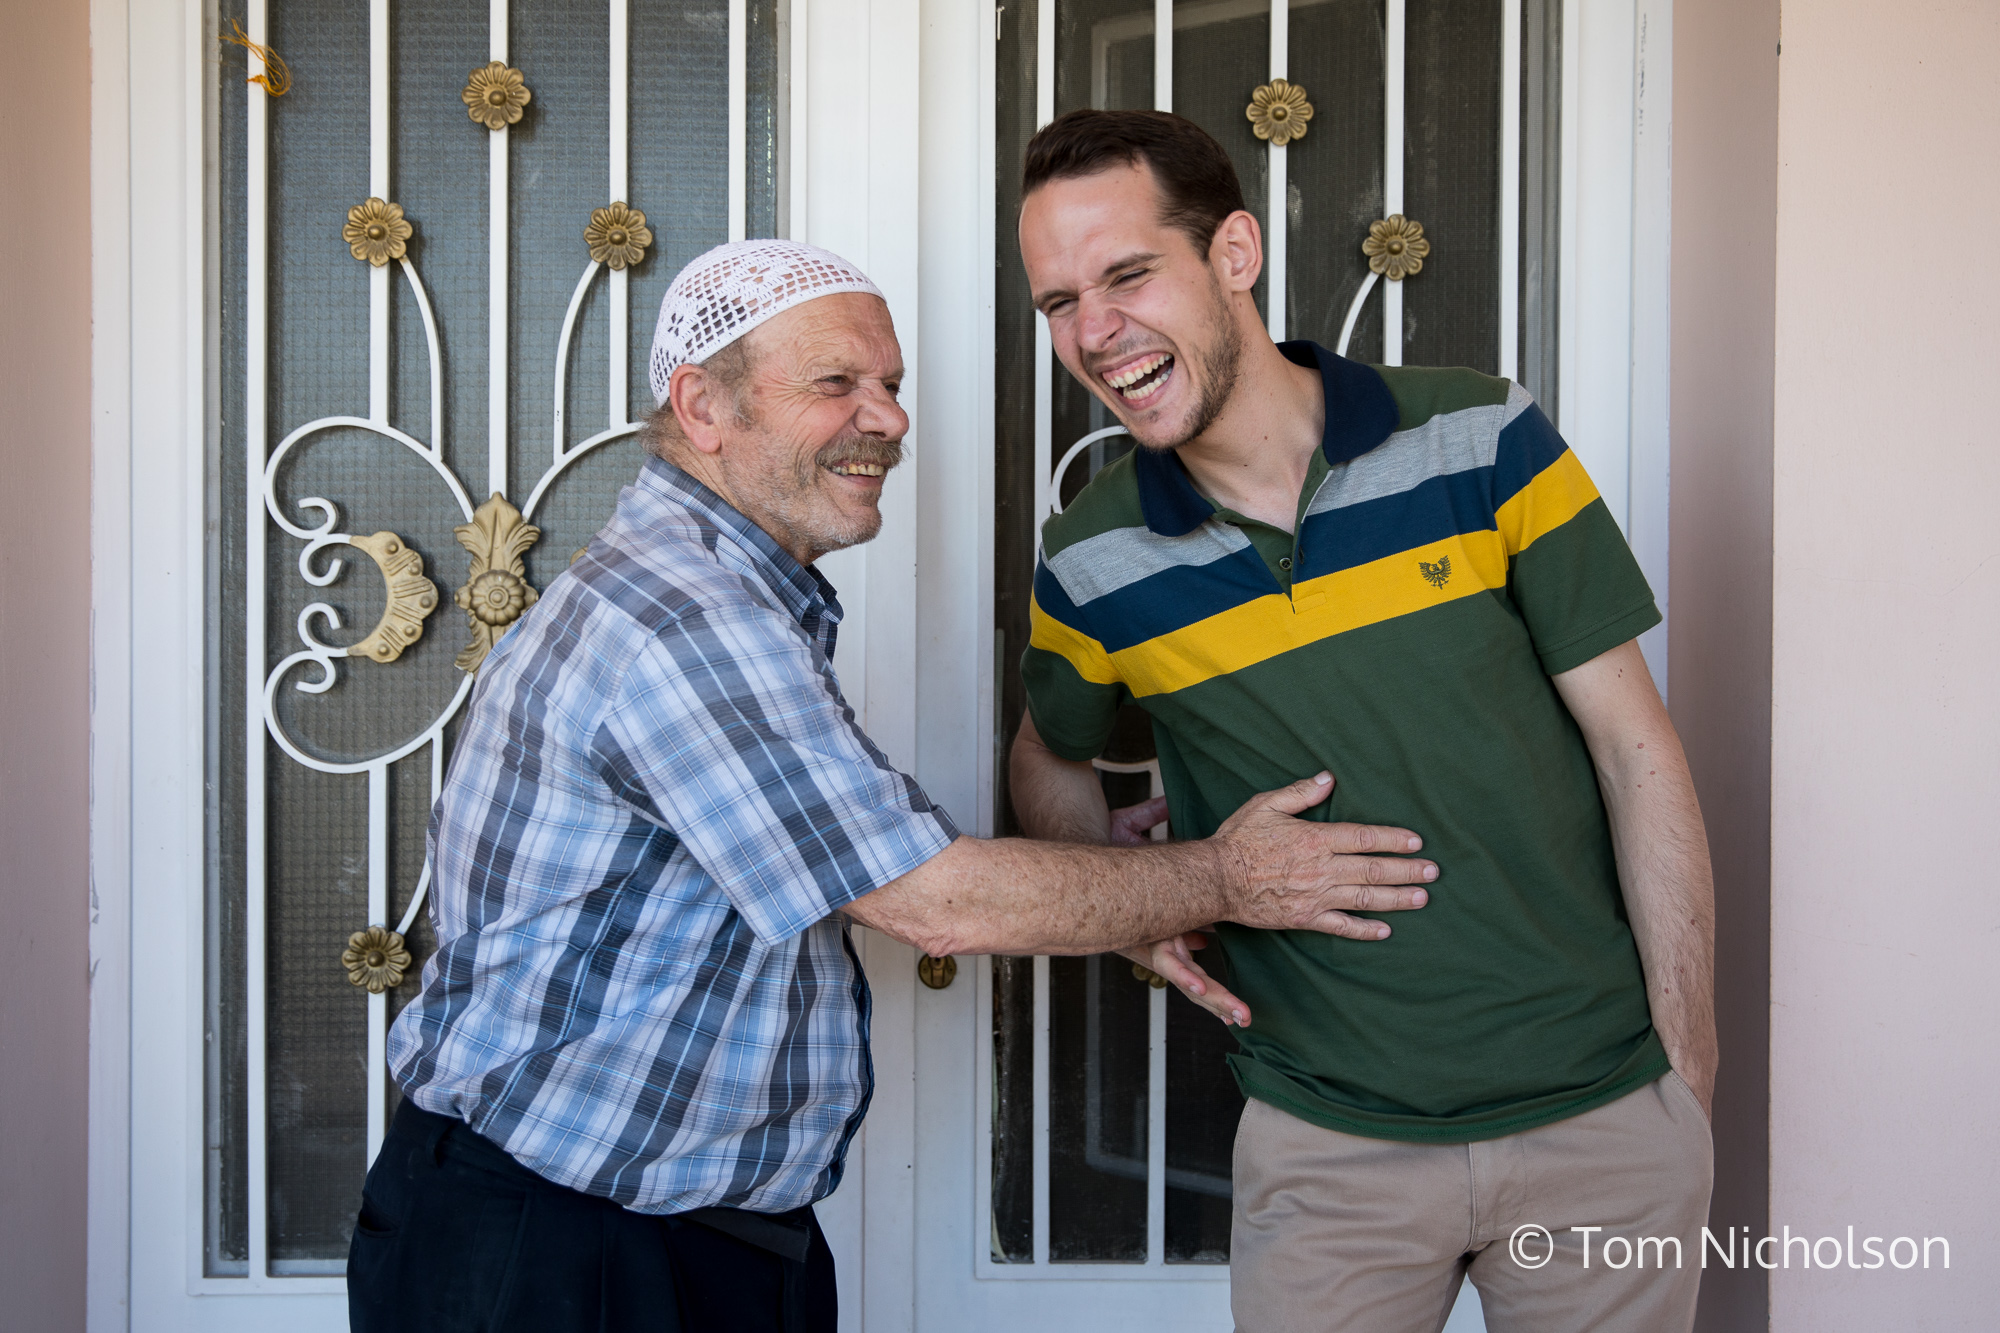 ©2018 Tom Nicholson. 20/06/2018. Bekaa Valley, Lebanon. Abdullah Birakdar, age 24, from Damascus, Syria, jokes with his father at their home in the Bekaa Valley, Lebanon, only a few kilometres from the Syrian border. Abdullah left Damascus with his family in 2013 to avoid serving in the army, and now teaches traditional Arab folk music at the Action for Hope centre. Abdullah's father used to be an Archaeologist at Damascus museum, where he made drawings of artefacts that had been excavated, to be kept as records. He recalled stories of successfully reassembling 17 pieces of an ancient column from Palmyra.